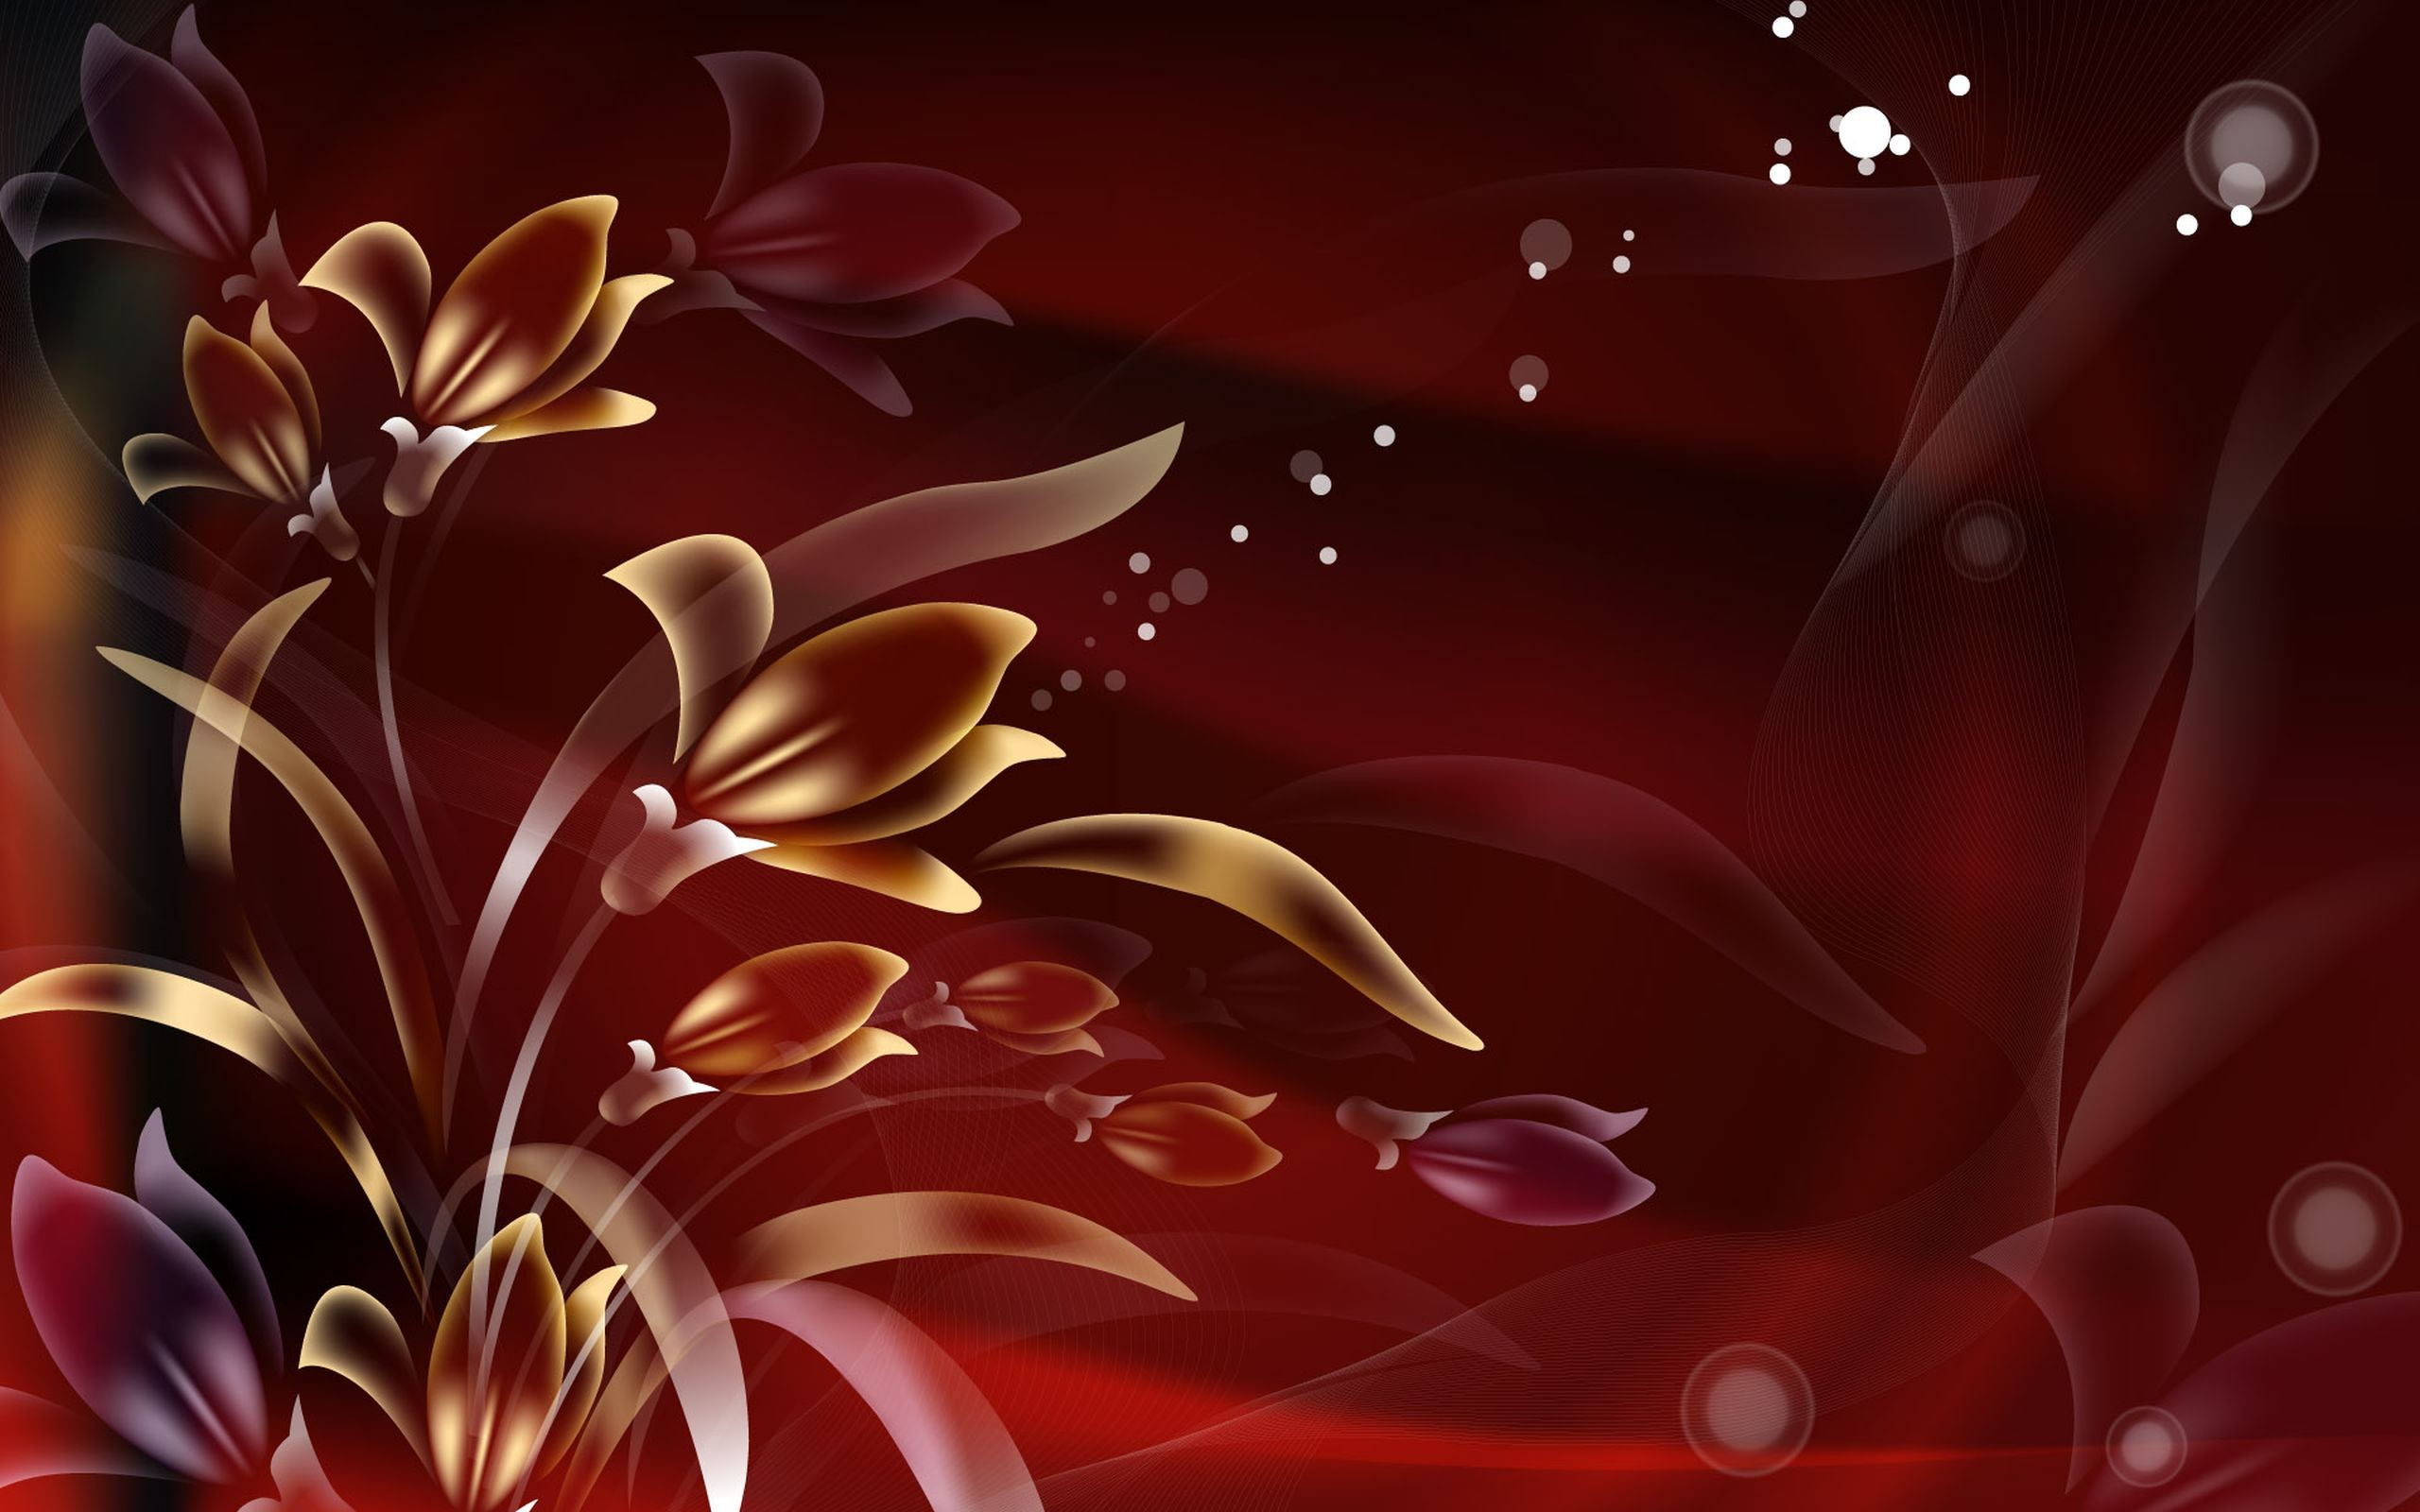 Abstract Flower Desktop Backgrounds Free